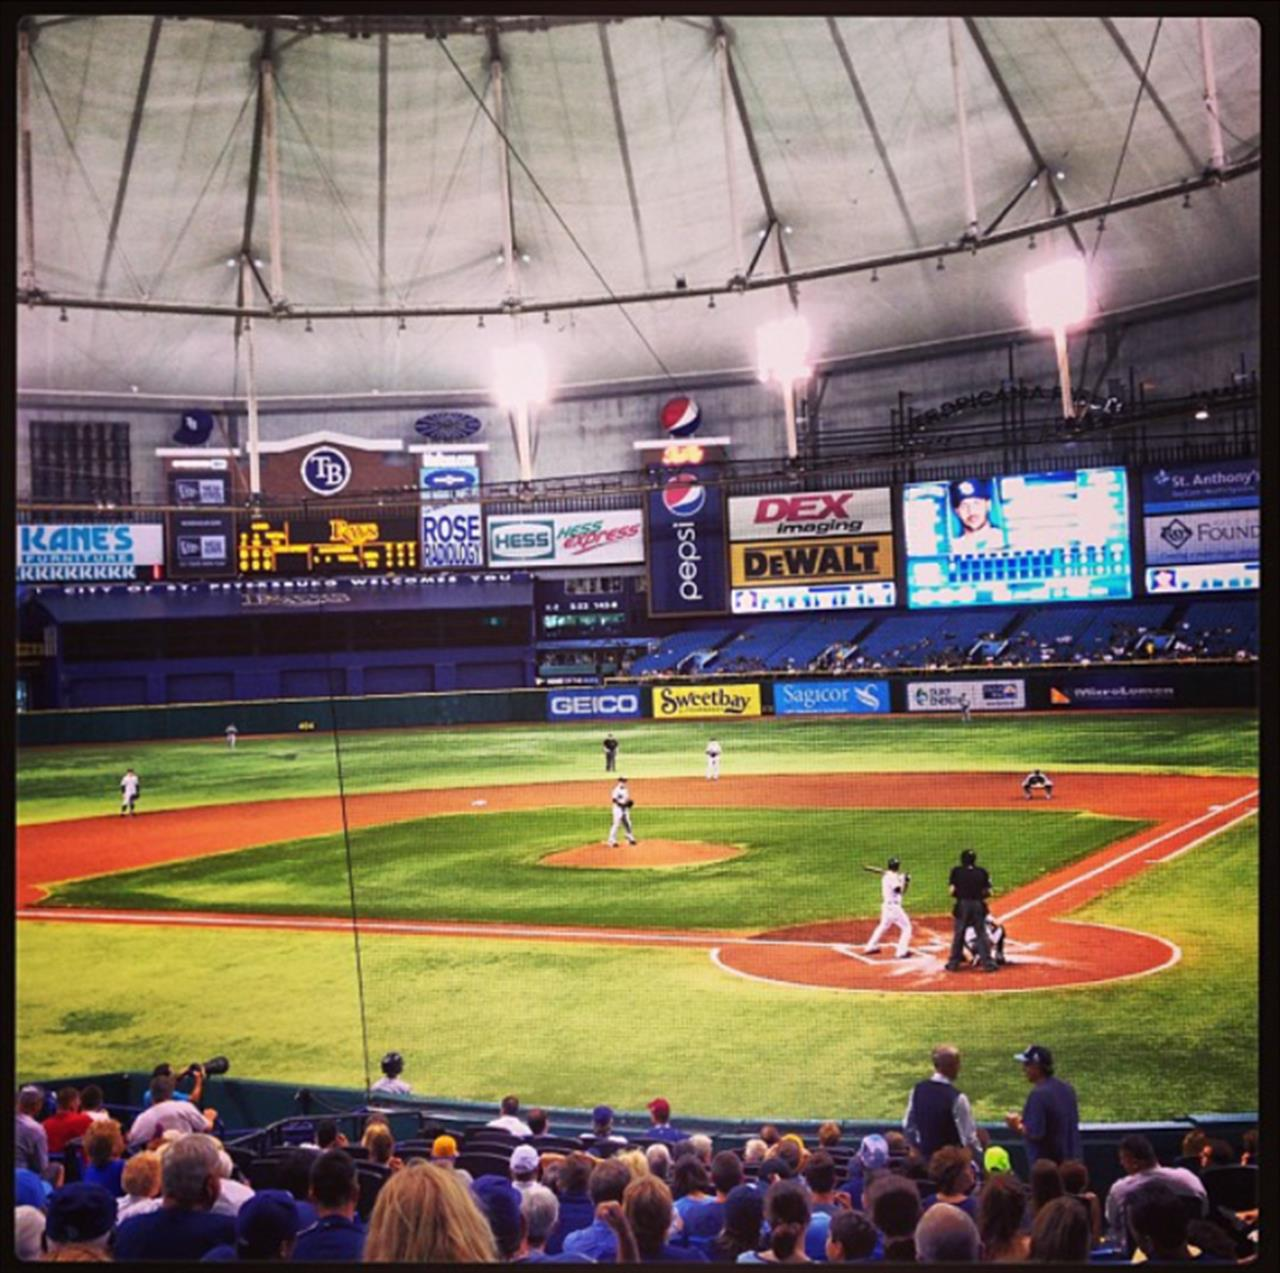 Tampa Bay Rays Baseball Game at Tropicana Field in St. Petersburg, Florida.